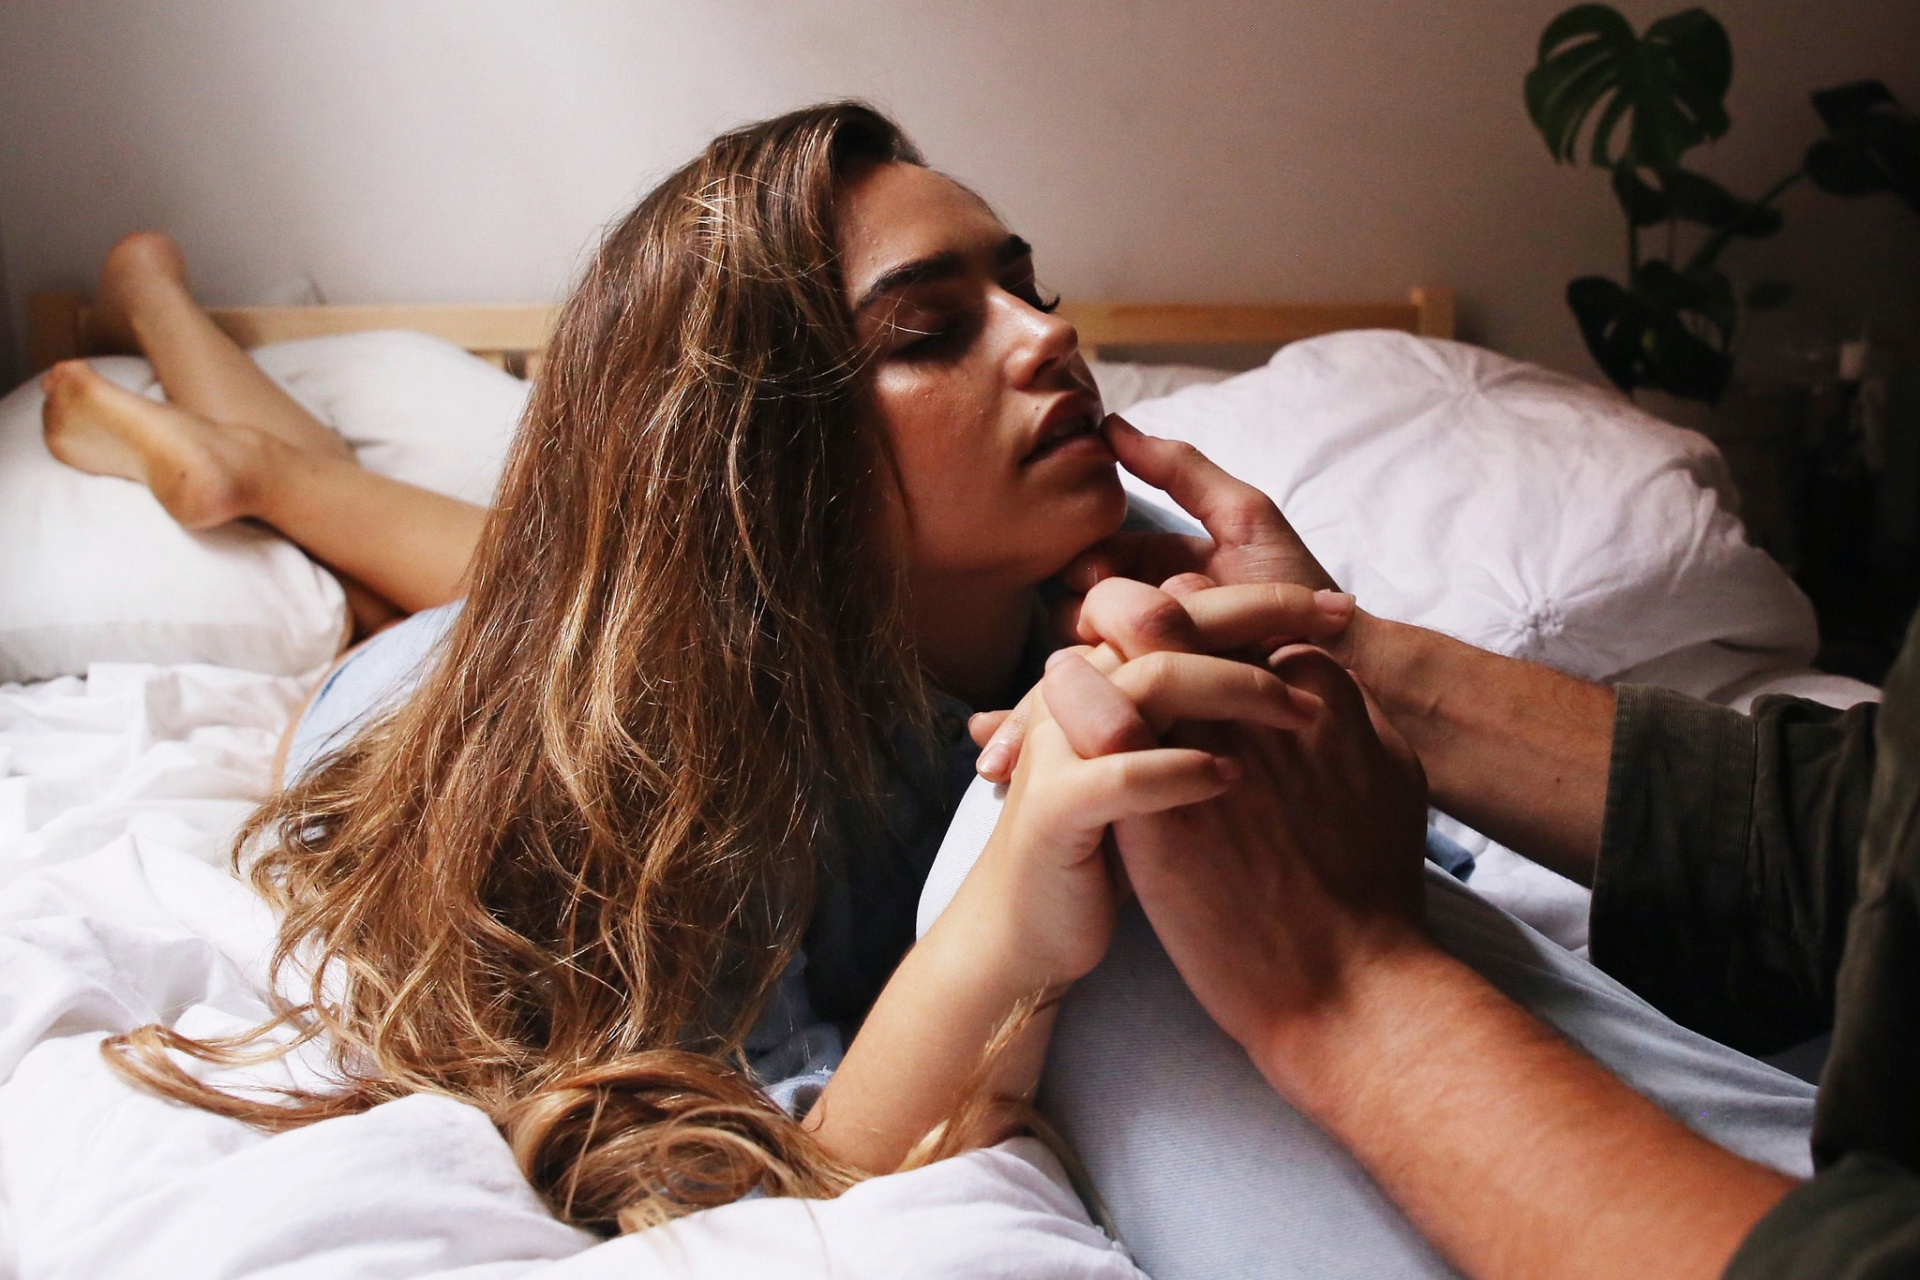 If You're Looking For Love To Make You Whole Again, Read This